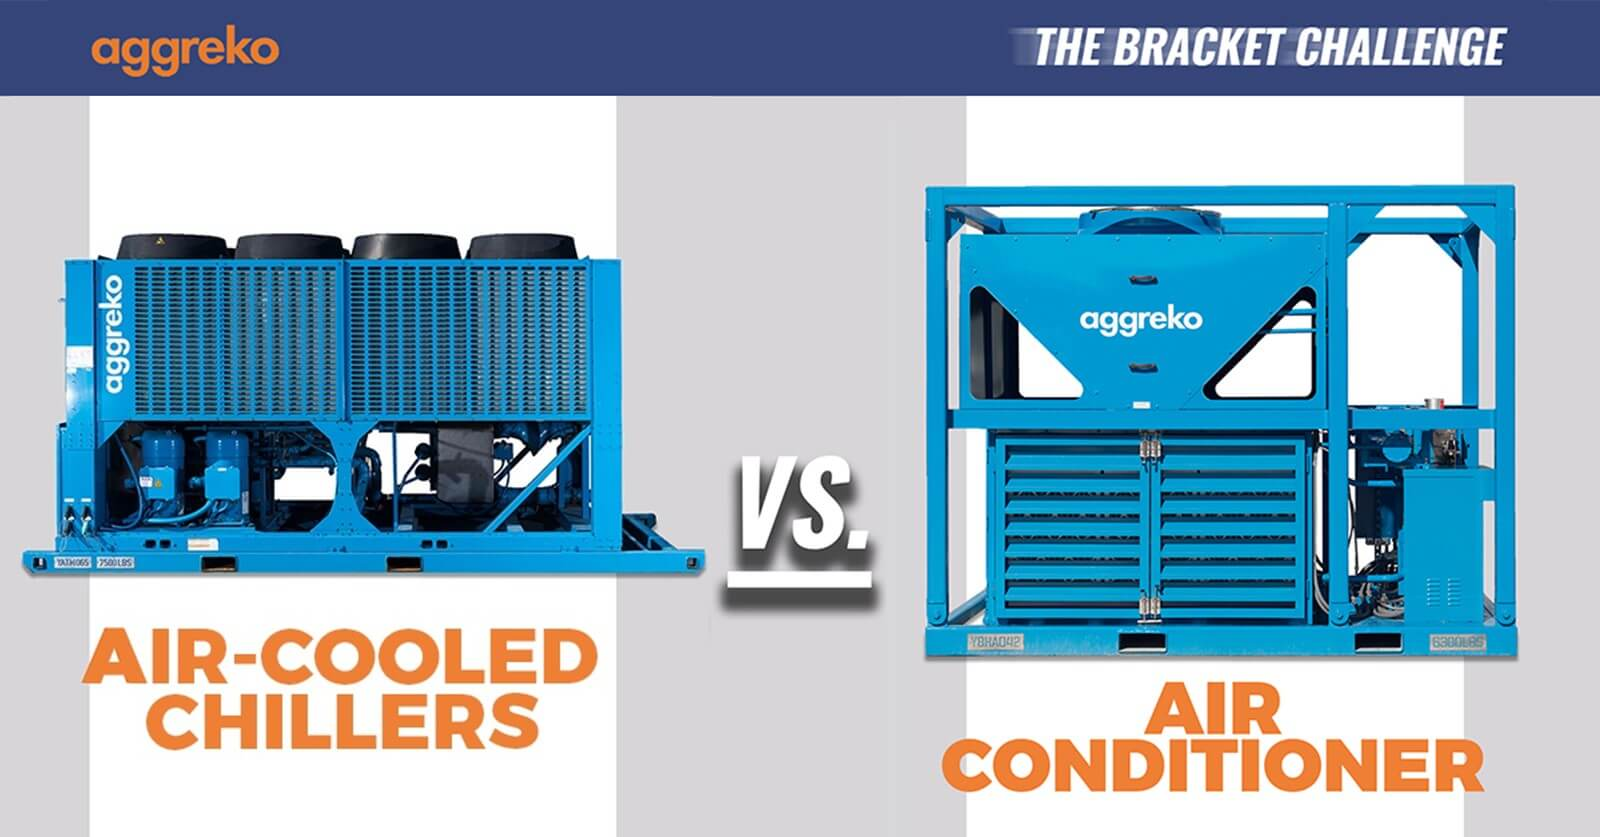 Air-cooled chillers vs Air conditioners